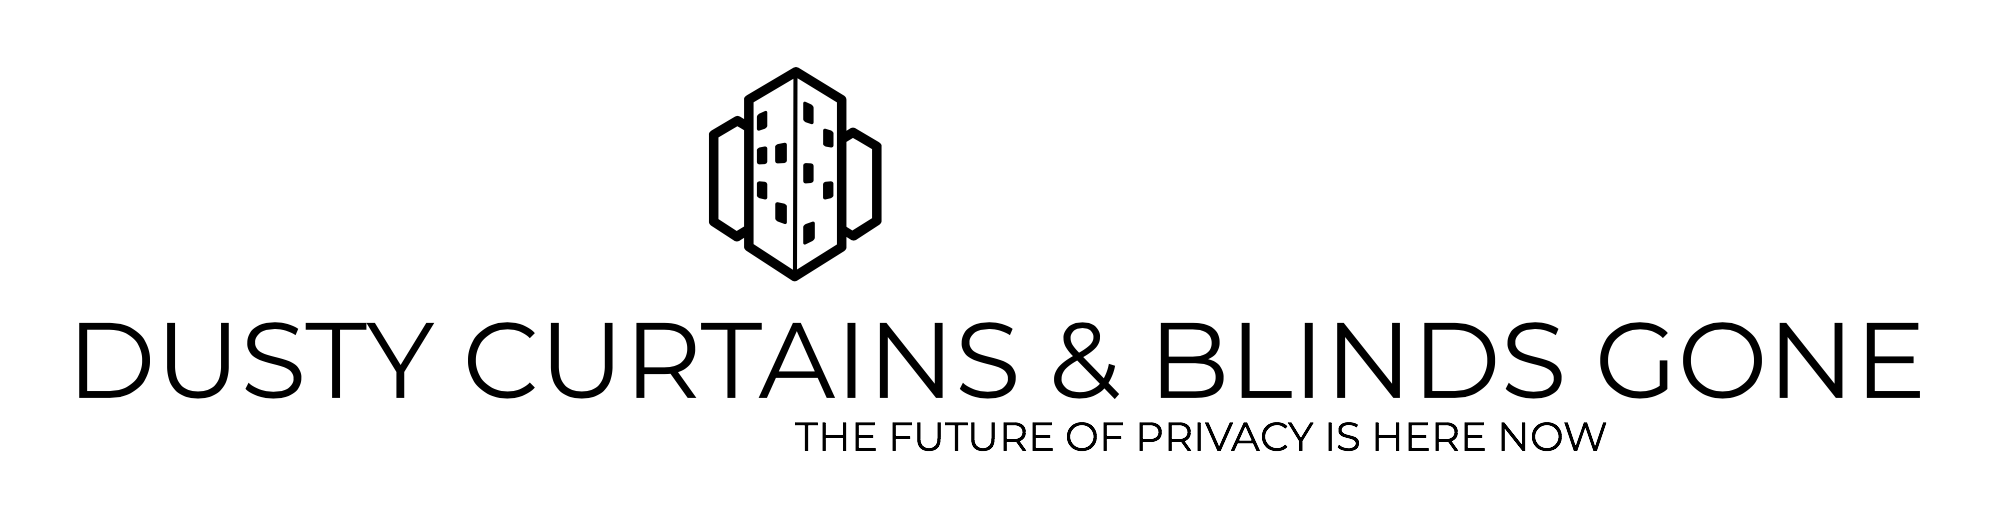 DUSTY CURTAINS & BLINDS GONE-logo-black.png